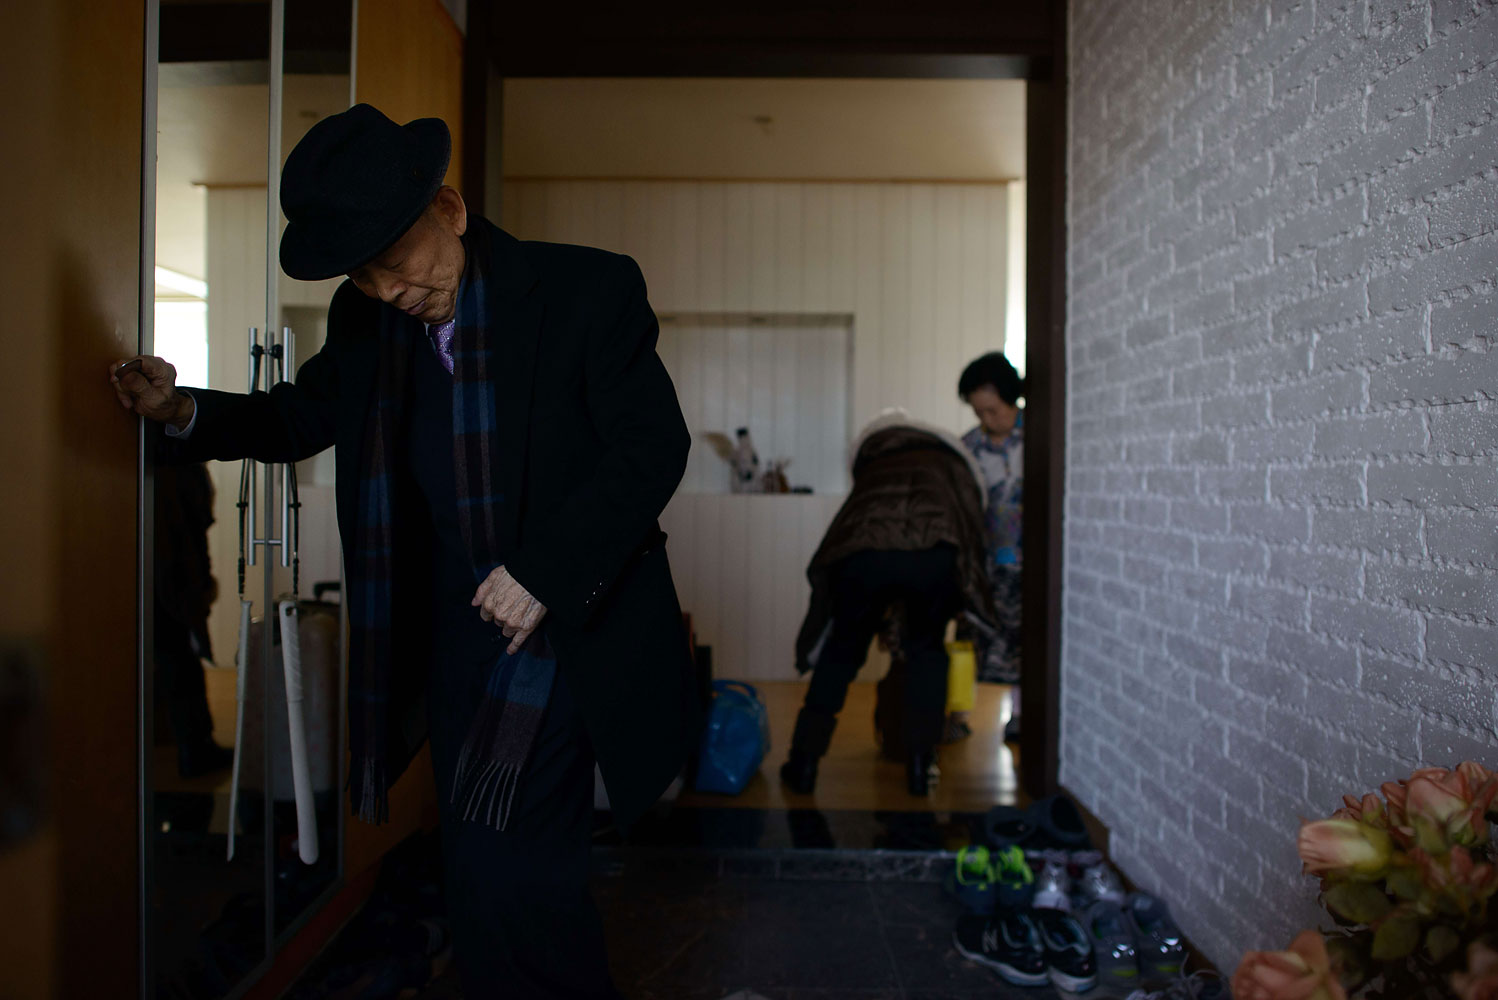 Kim Se-Rin leaves his home on the outskirts of Seoul, as he prepares to visit his relatives in North Korea whom he had not seen for 60 years, Feb. 19, 2014.